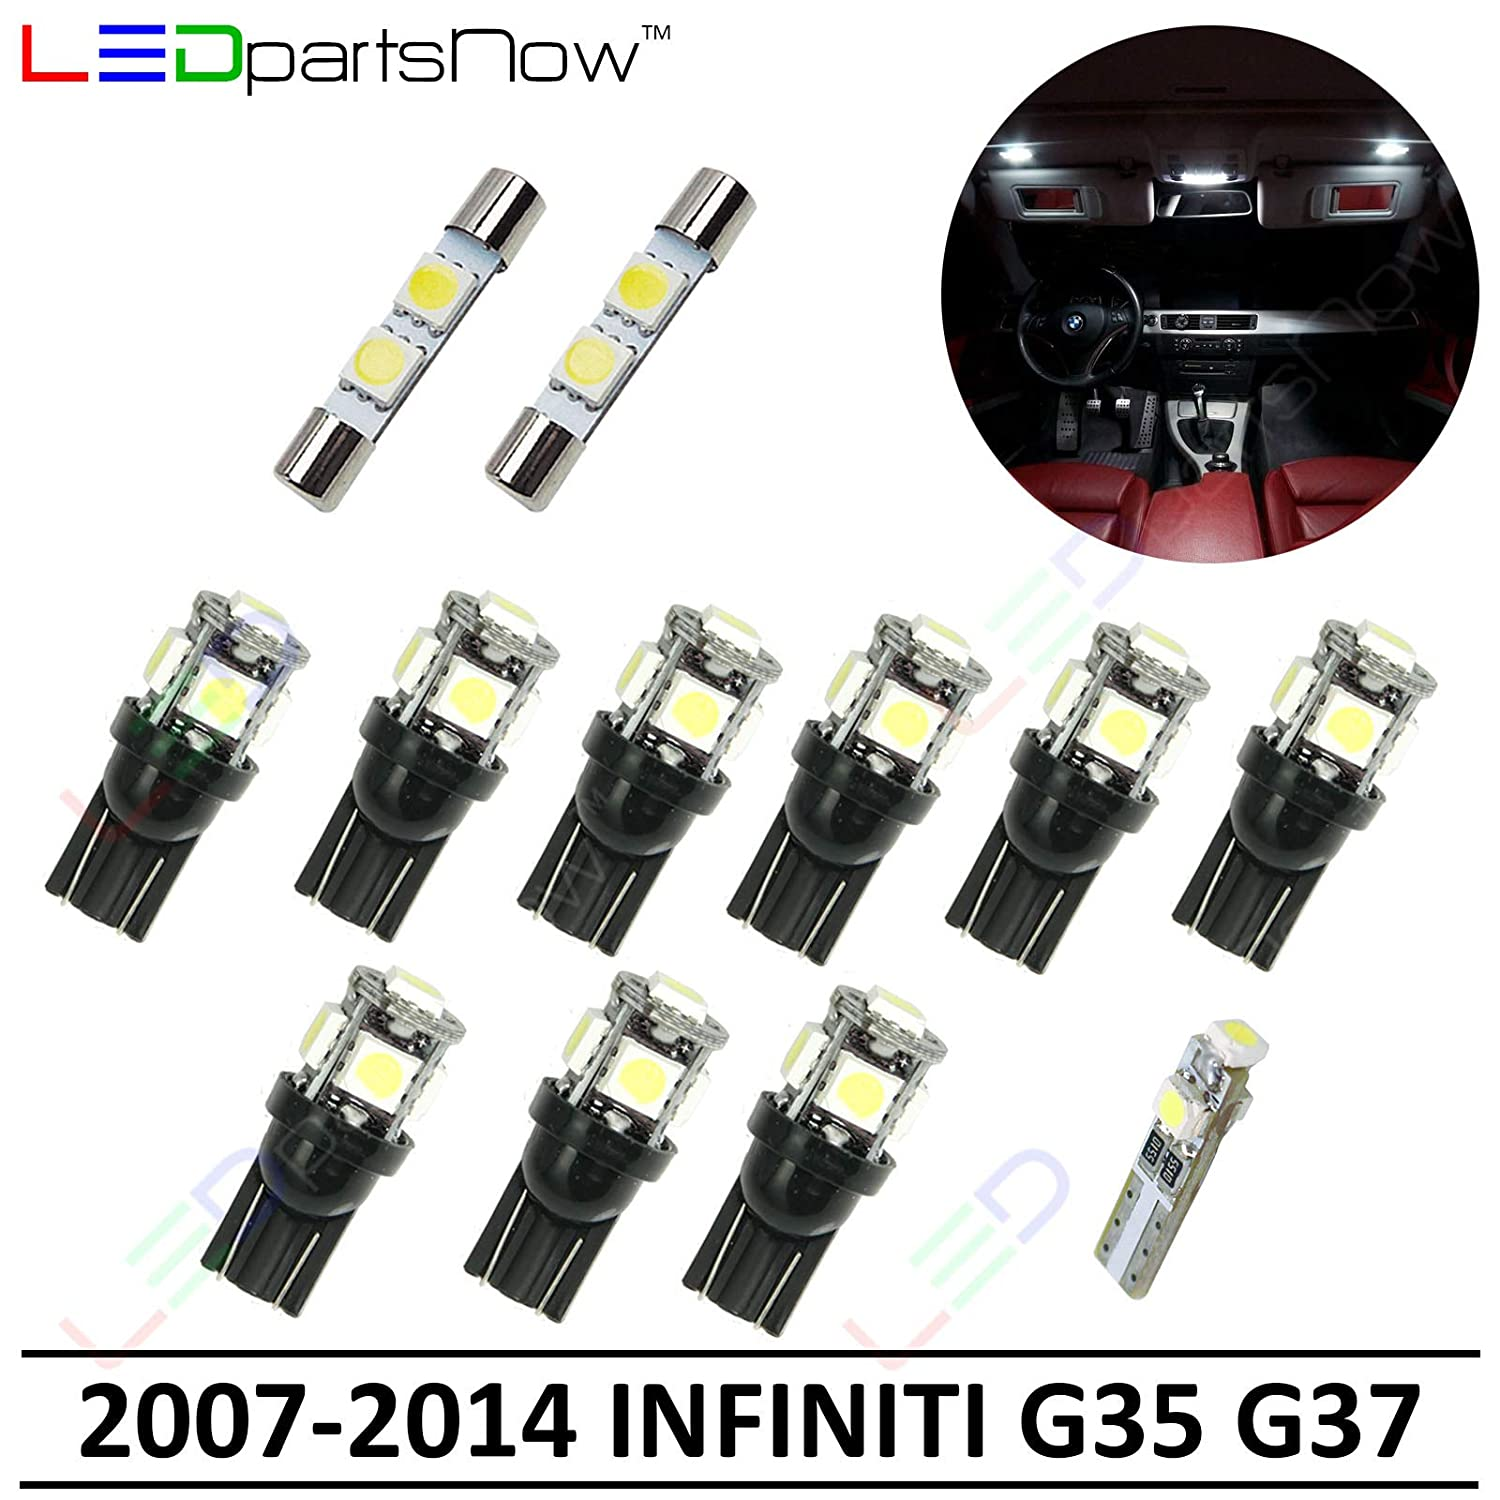 LEDpartsNow Interior LED Lights Replacement for 2007-2014 Infiniti G35 G37  Sedan Accessories Package Kit (12 Bulbs), WHITE